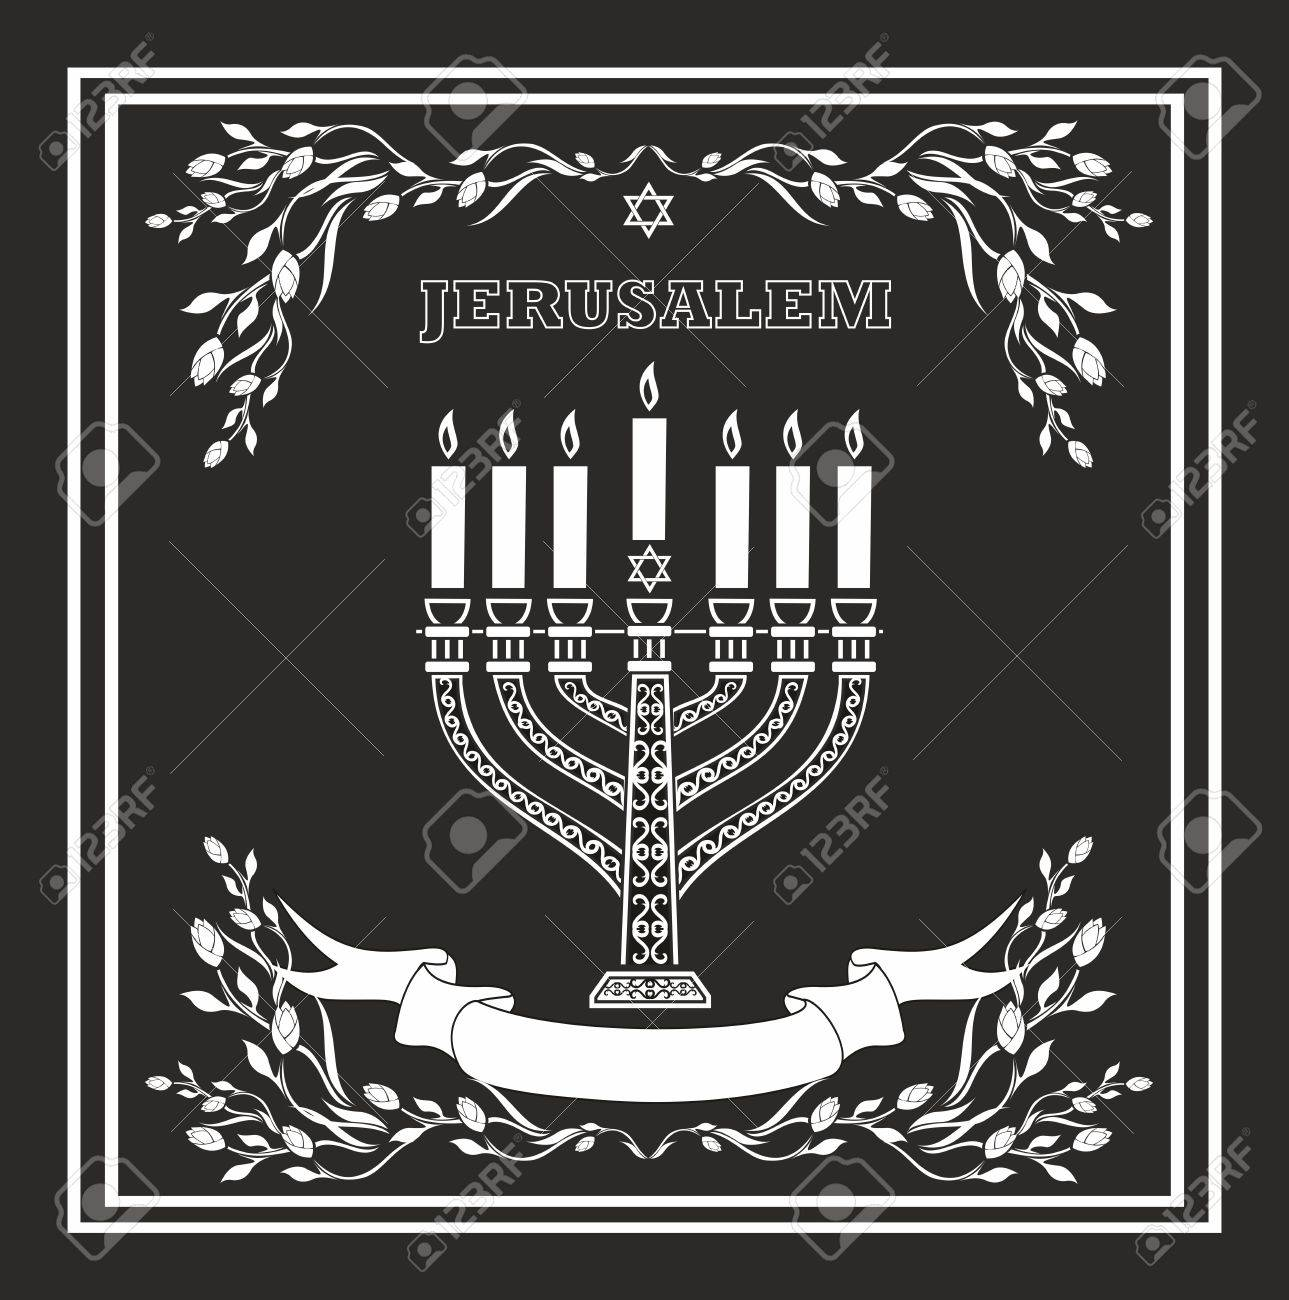 Jerusalem holiday vector background with menorah Stock Vector - 15903566